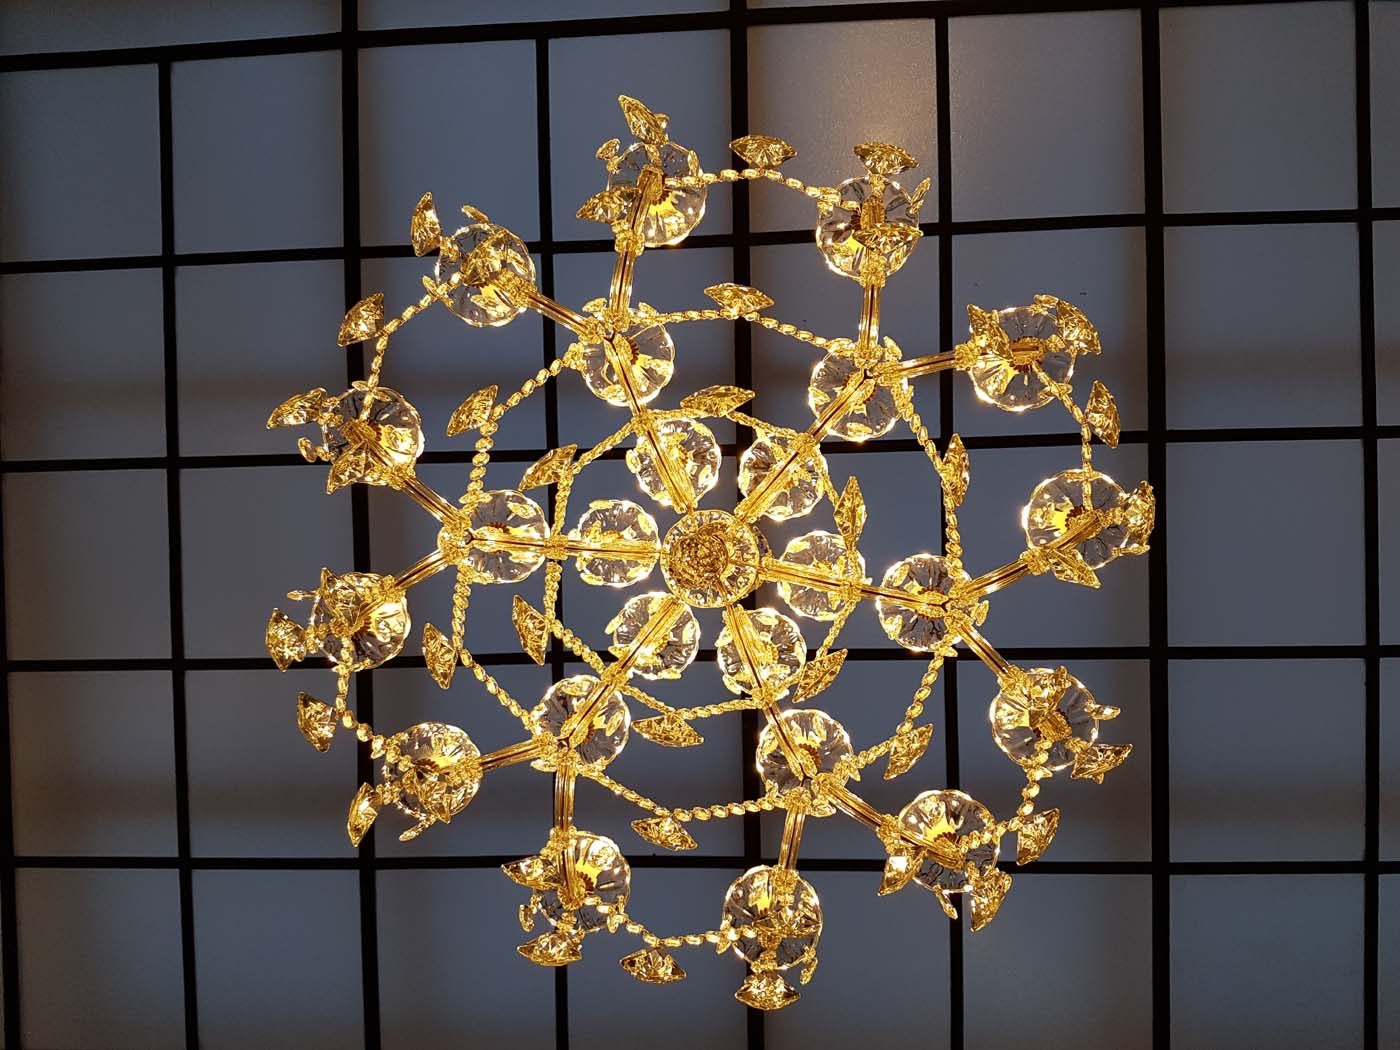 dessous-lustre-marietherese-24-lampes